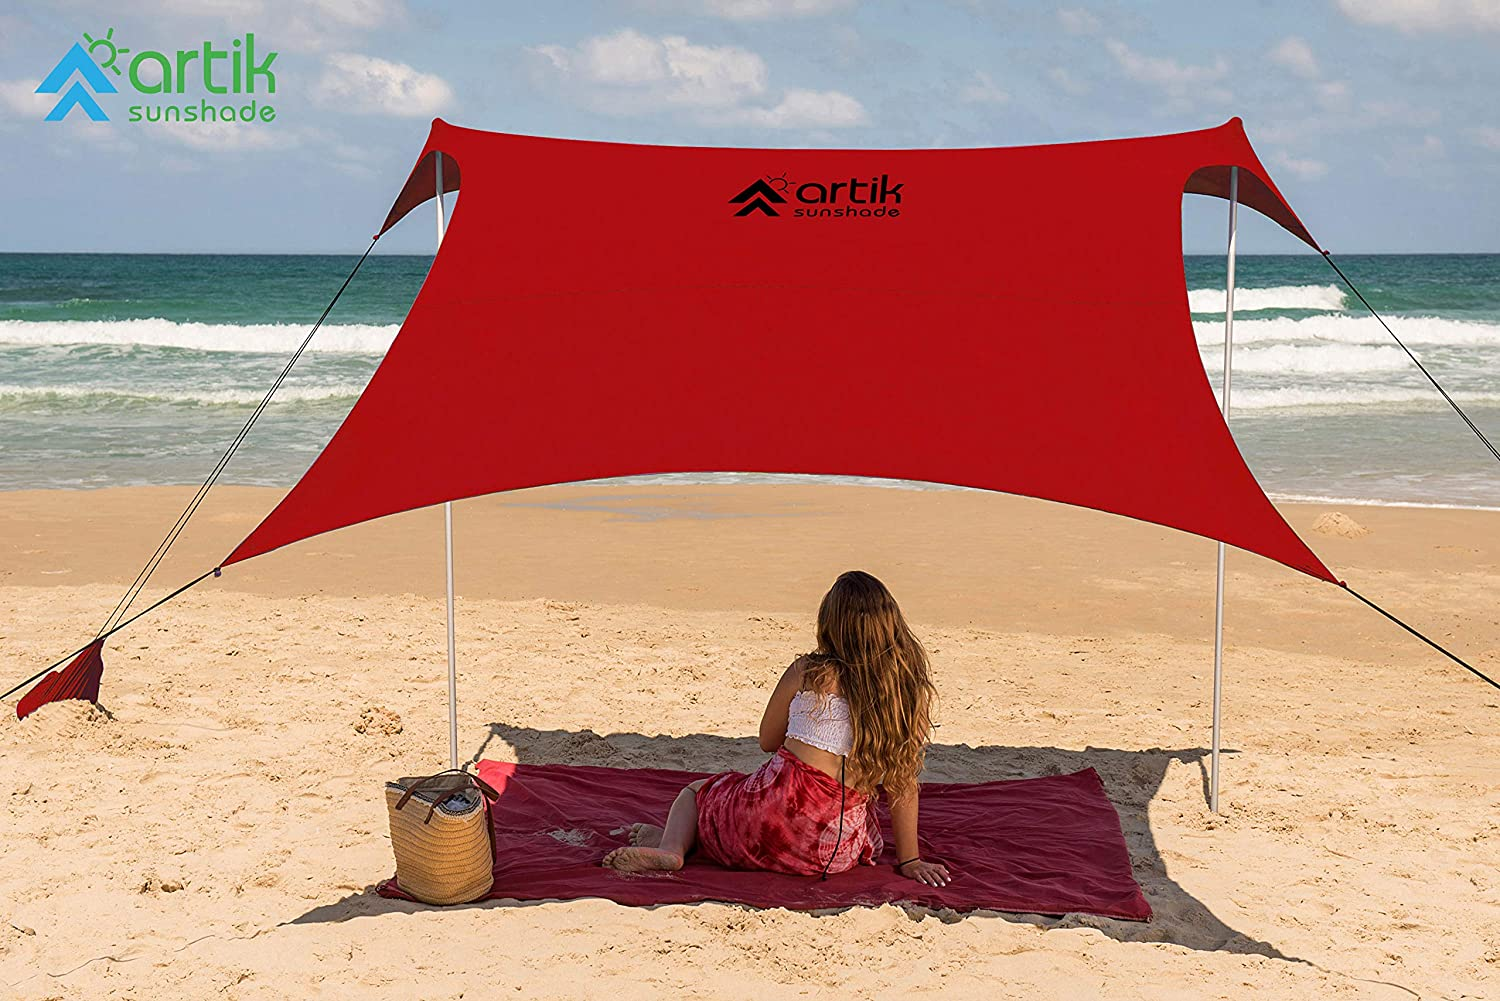 Lycra Sun shelter for The Beach,Camping and Outdoors SPF50 Artik Family Beach Tent Canopy Sunshade with Sandbag Anchors Simple /& Versatile